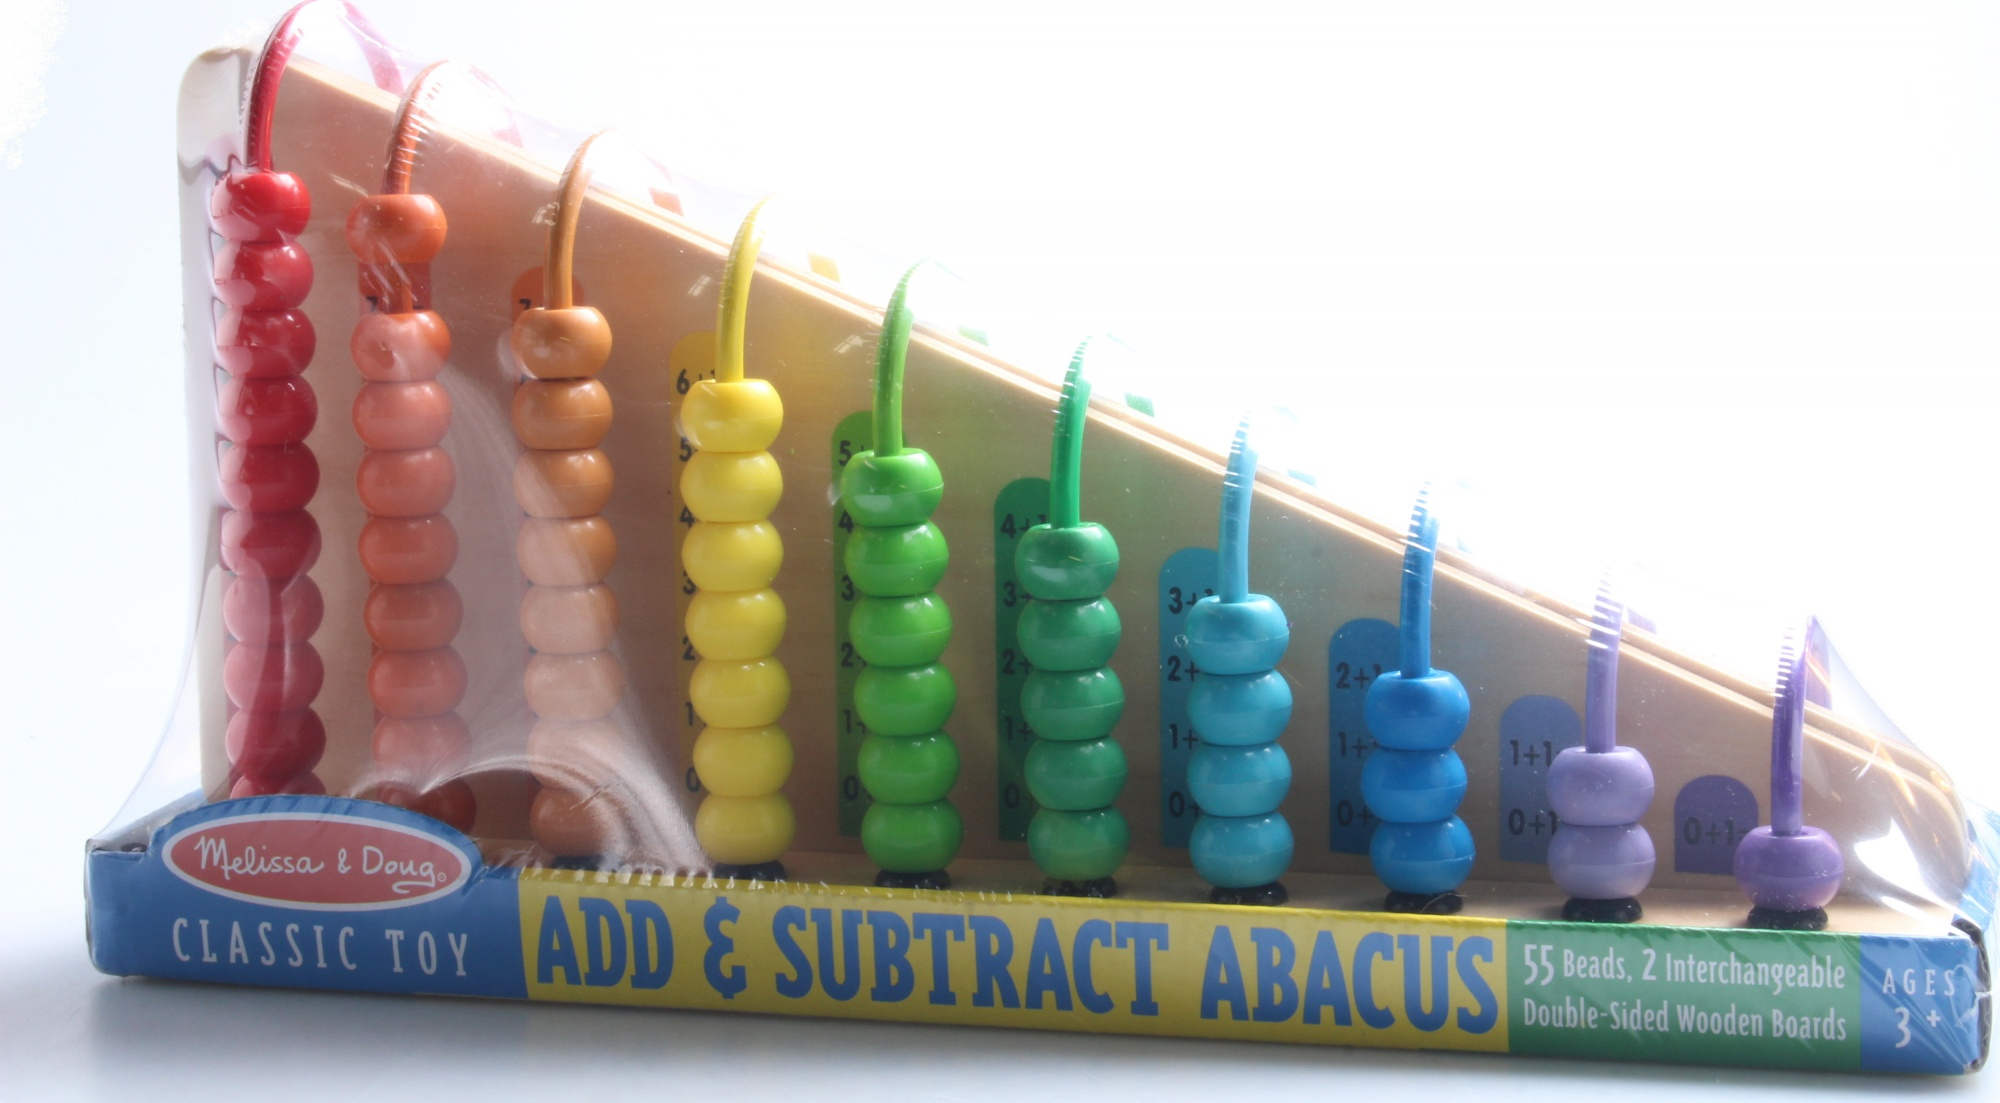 Melissa /& Doug Add /& Subtract Abacus Educational Toy With 55 Coloful Beads and Sturdy Wooden Construction